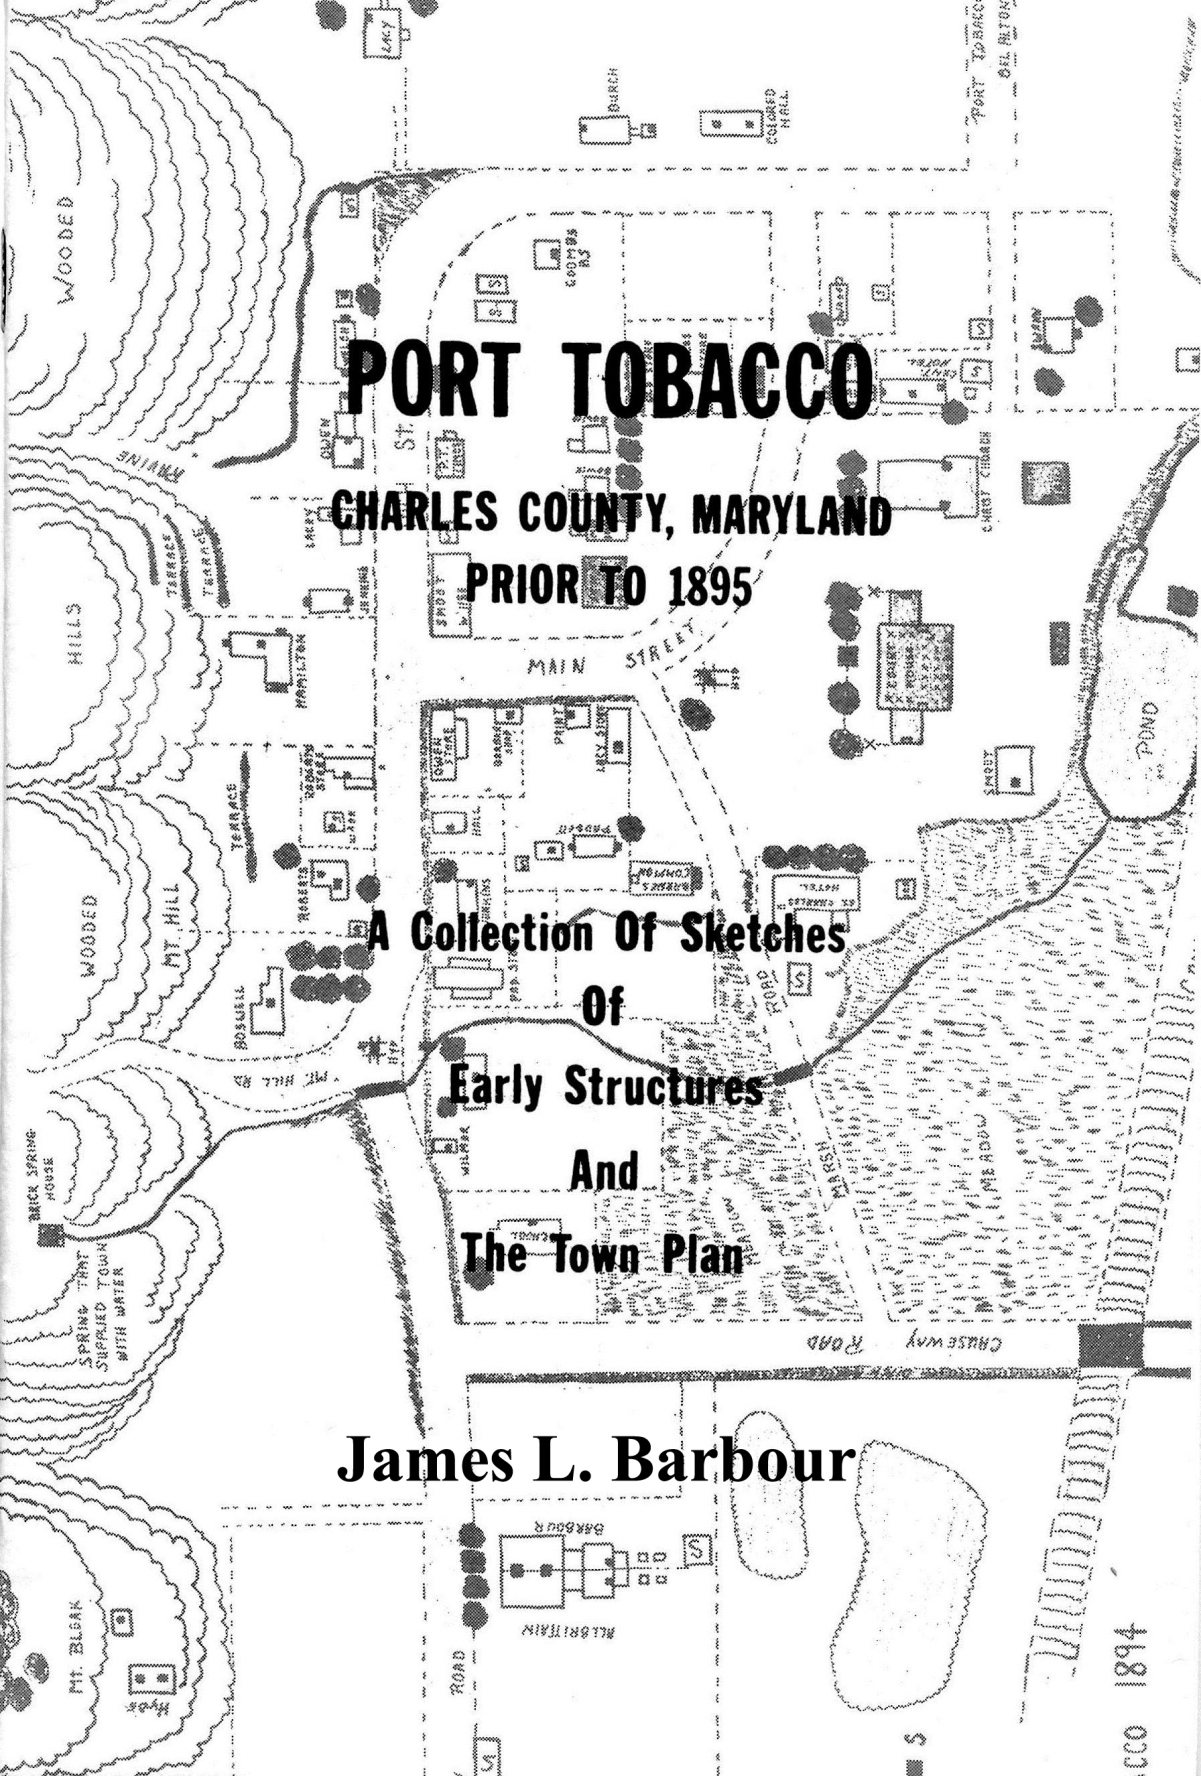 Port Tobacco, MD - Prior to 1895